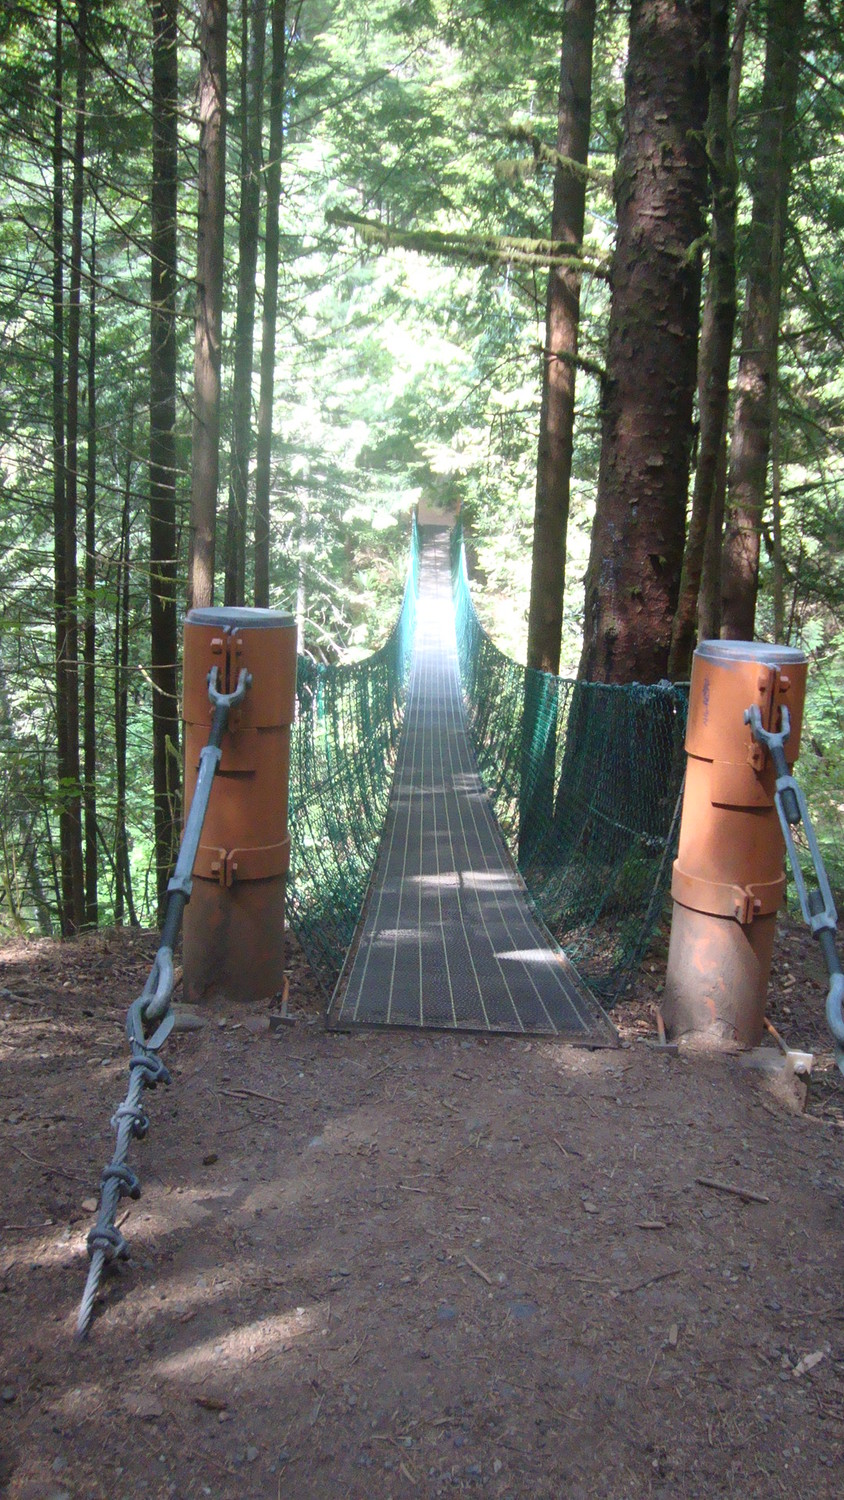 Juan de Fuca N. Park - Suspension bridge